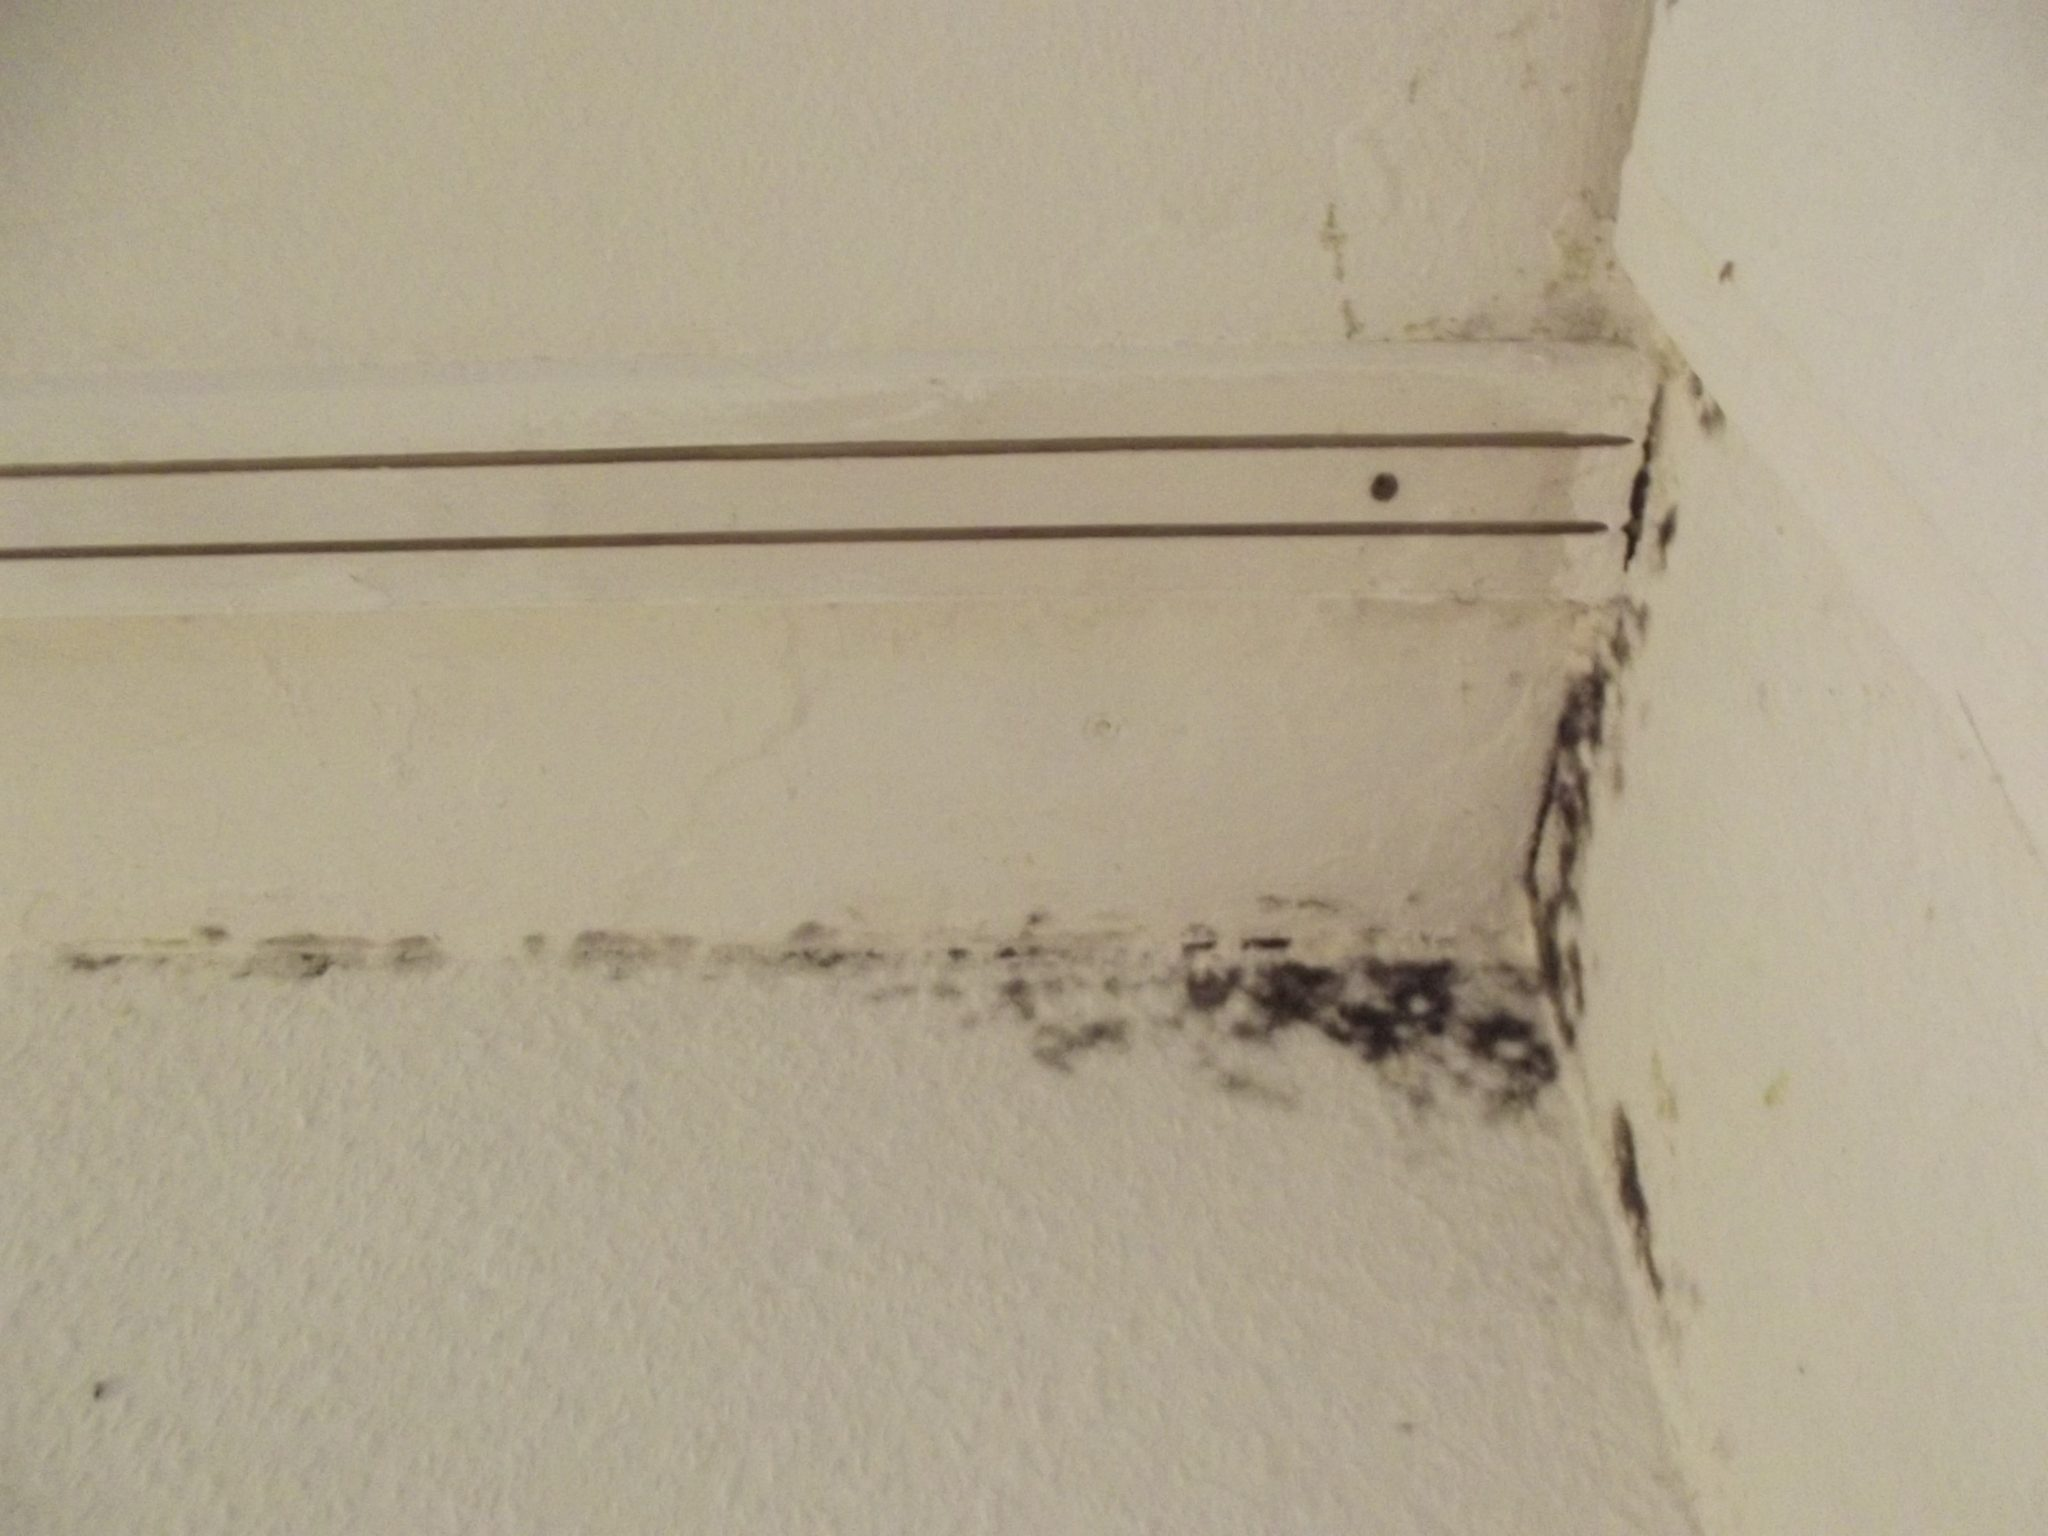 Spot Treat Black Mold in Your Home